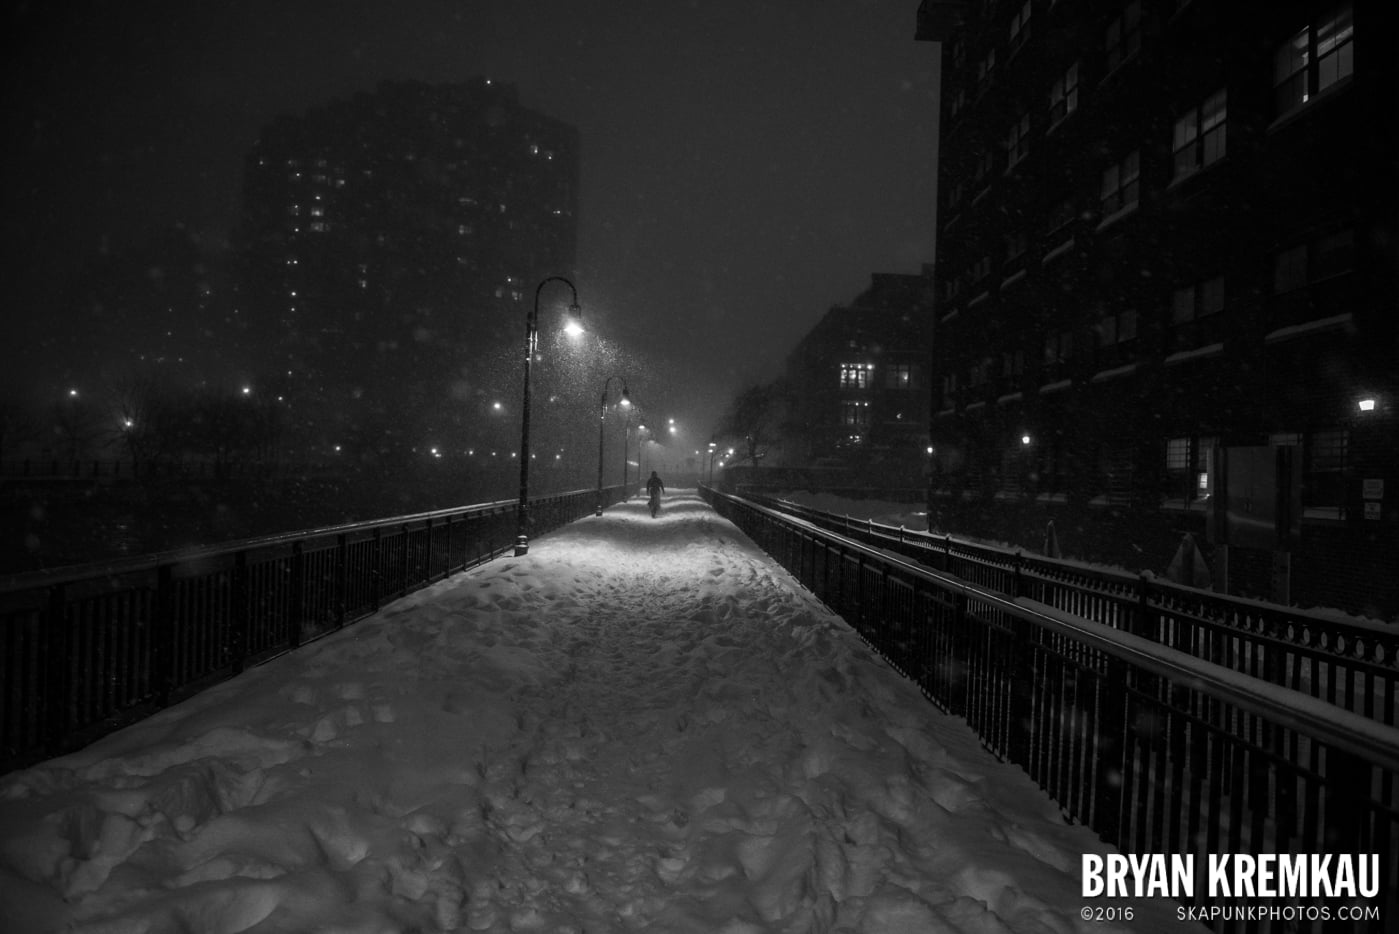 Blizzard 2016 in Jersey City, NJ - 1.23.16 (5)